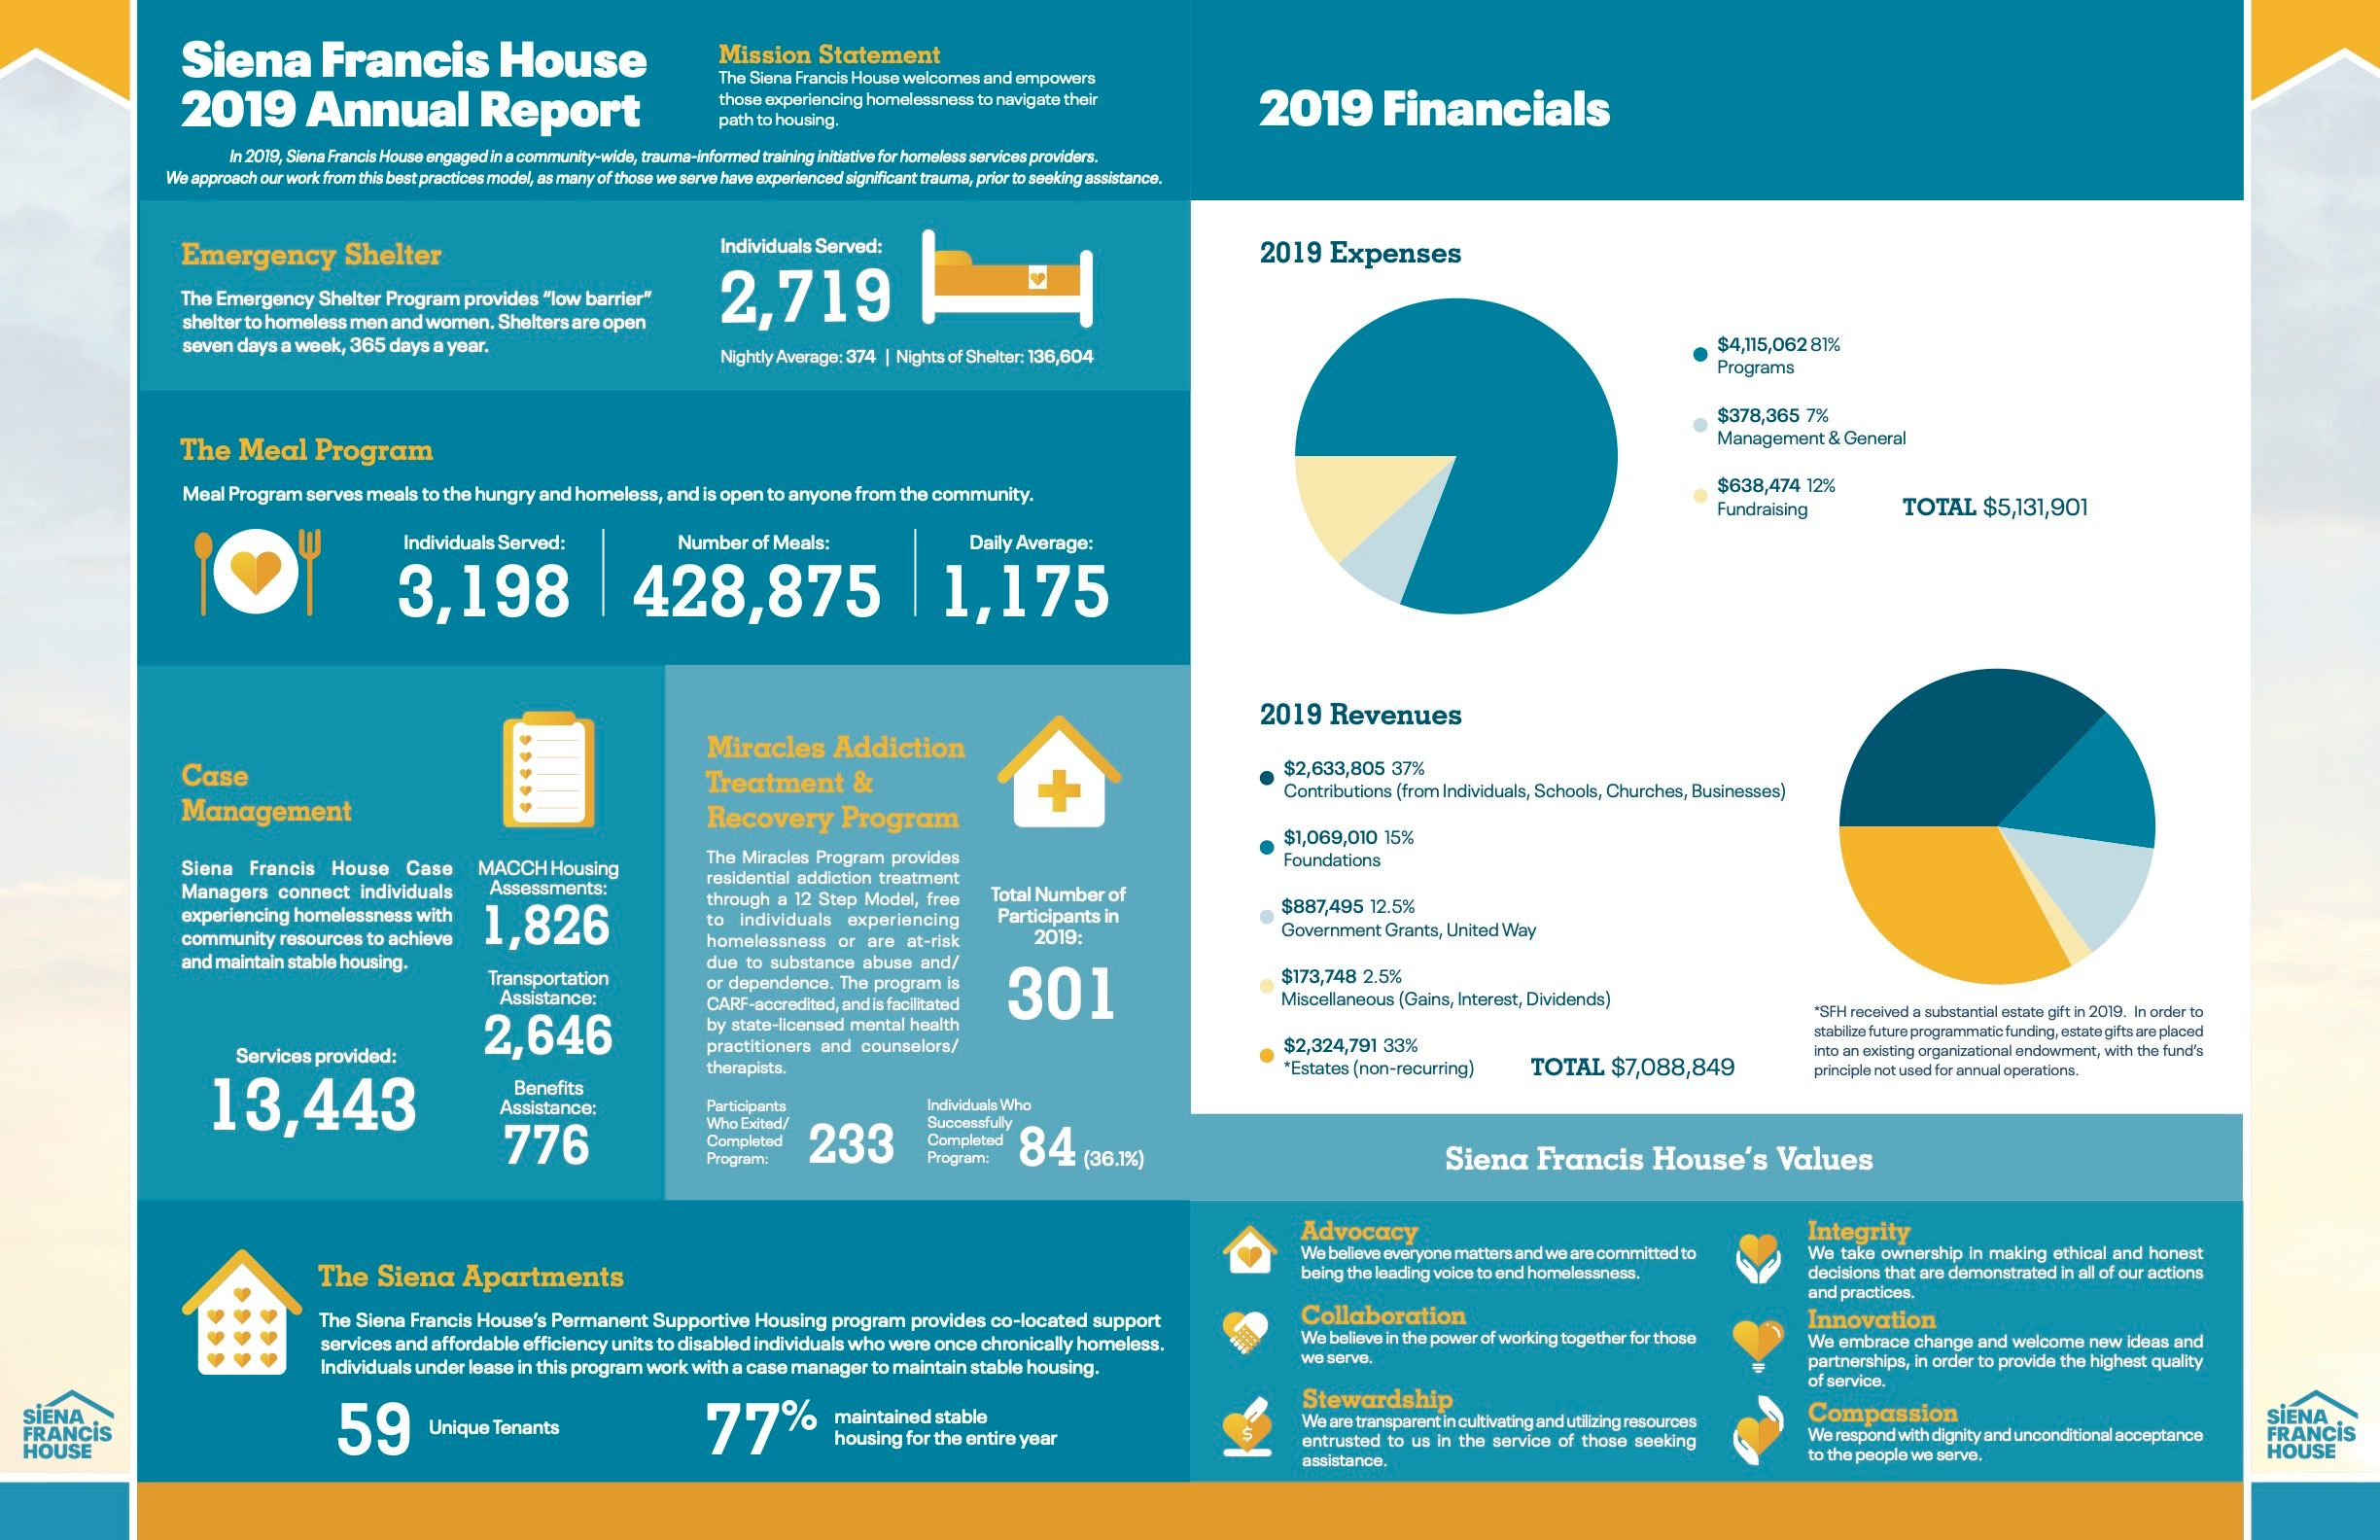 Siena Francis House's 2019 Annual Report